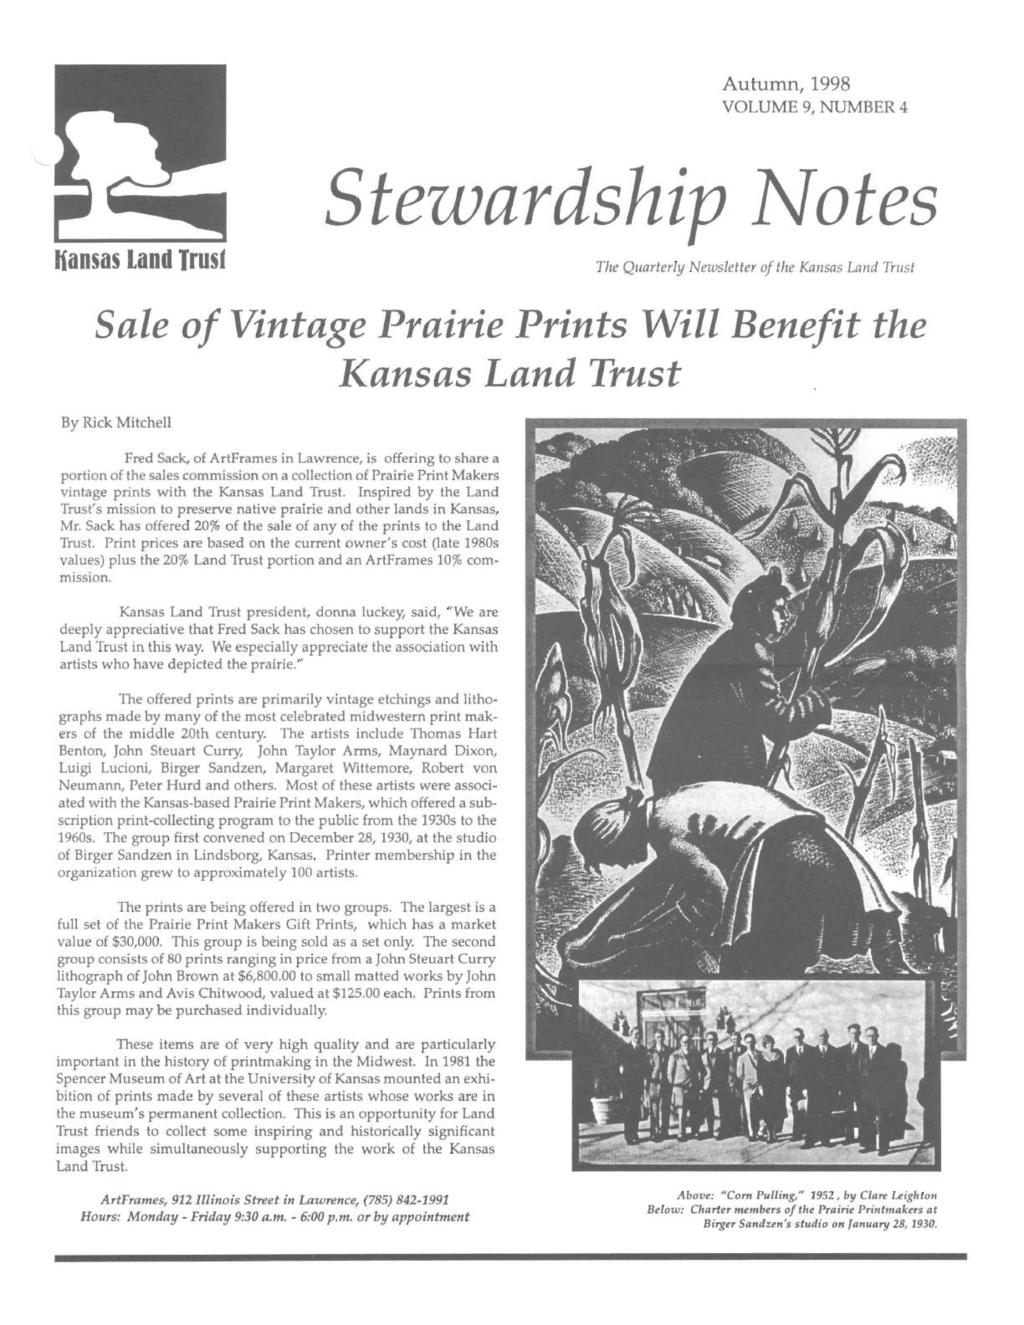 Autumn, 1998 VOLUME 9, NUMBER 4 tiansas Land Trust Stezvardship ~otes The Quarterly Newsletter of the Kansas Land Trust Sale of Vintage Prairie Prints Will Benefit the Kansas Land Trust By Rick